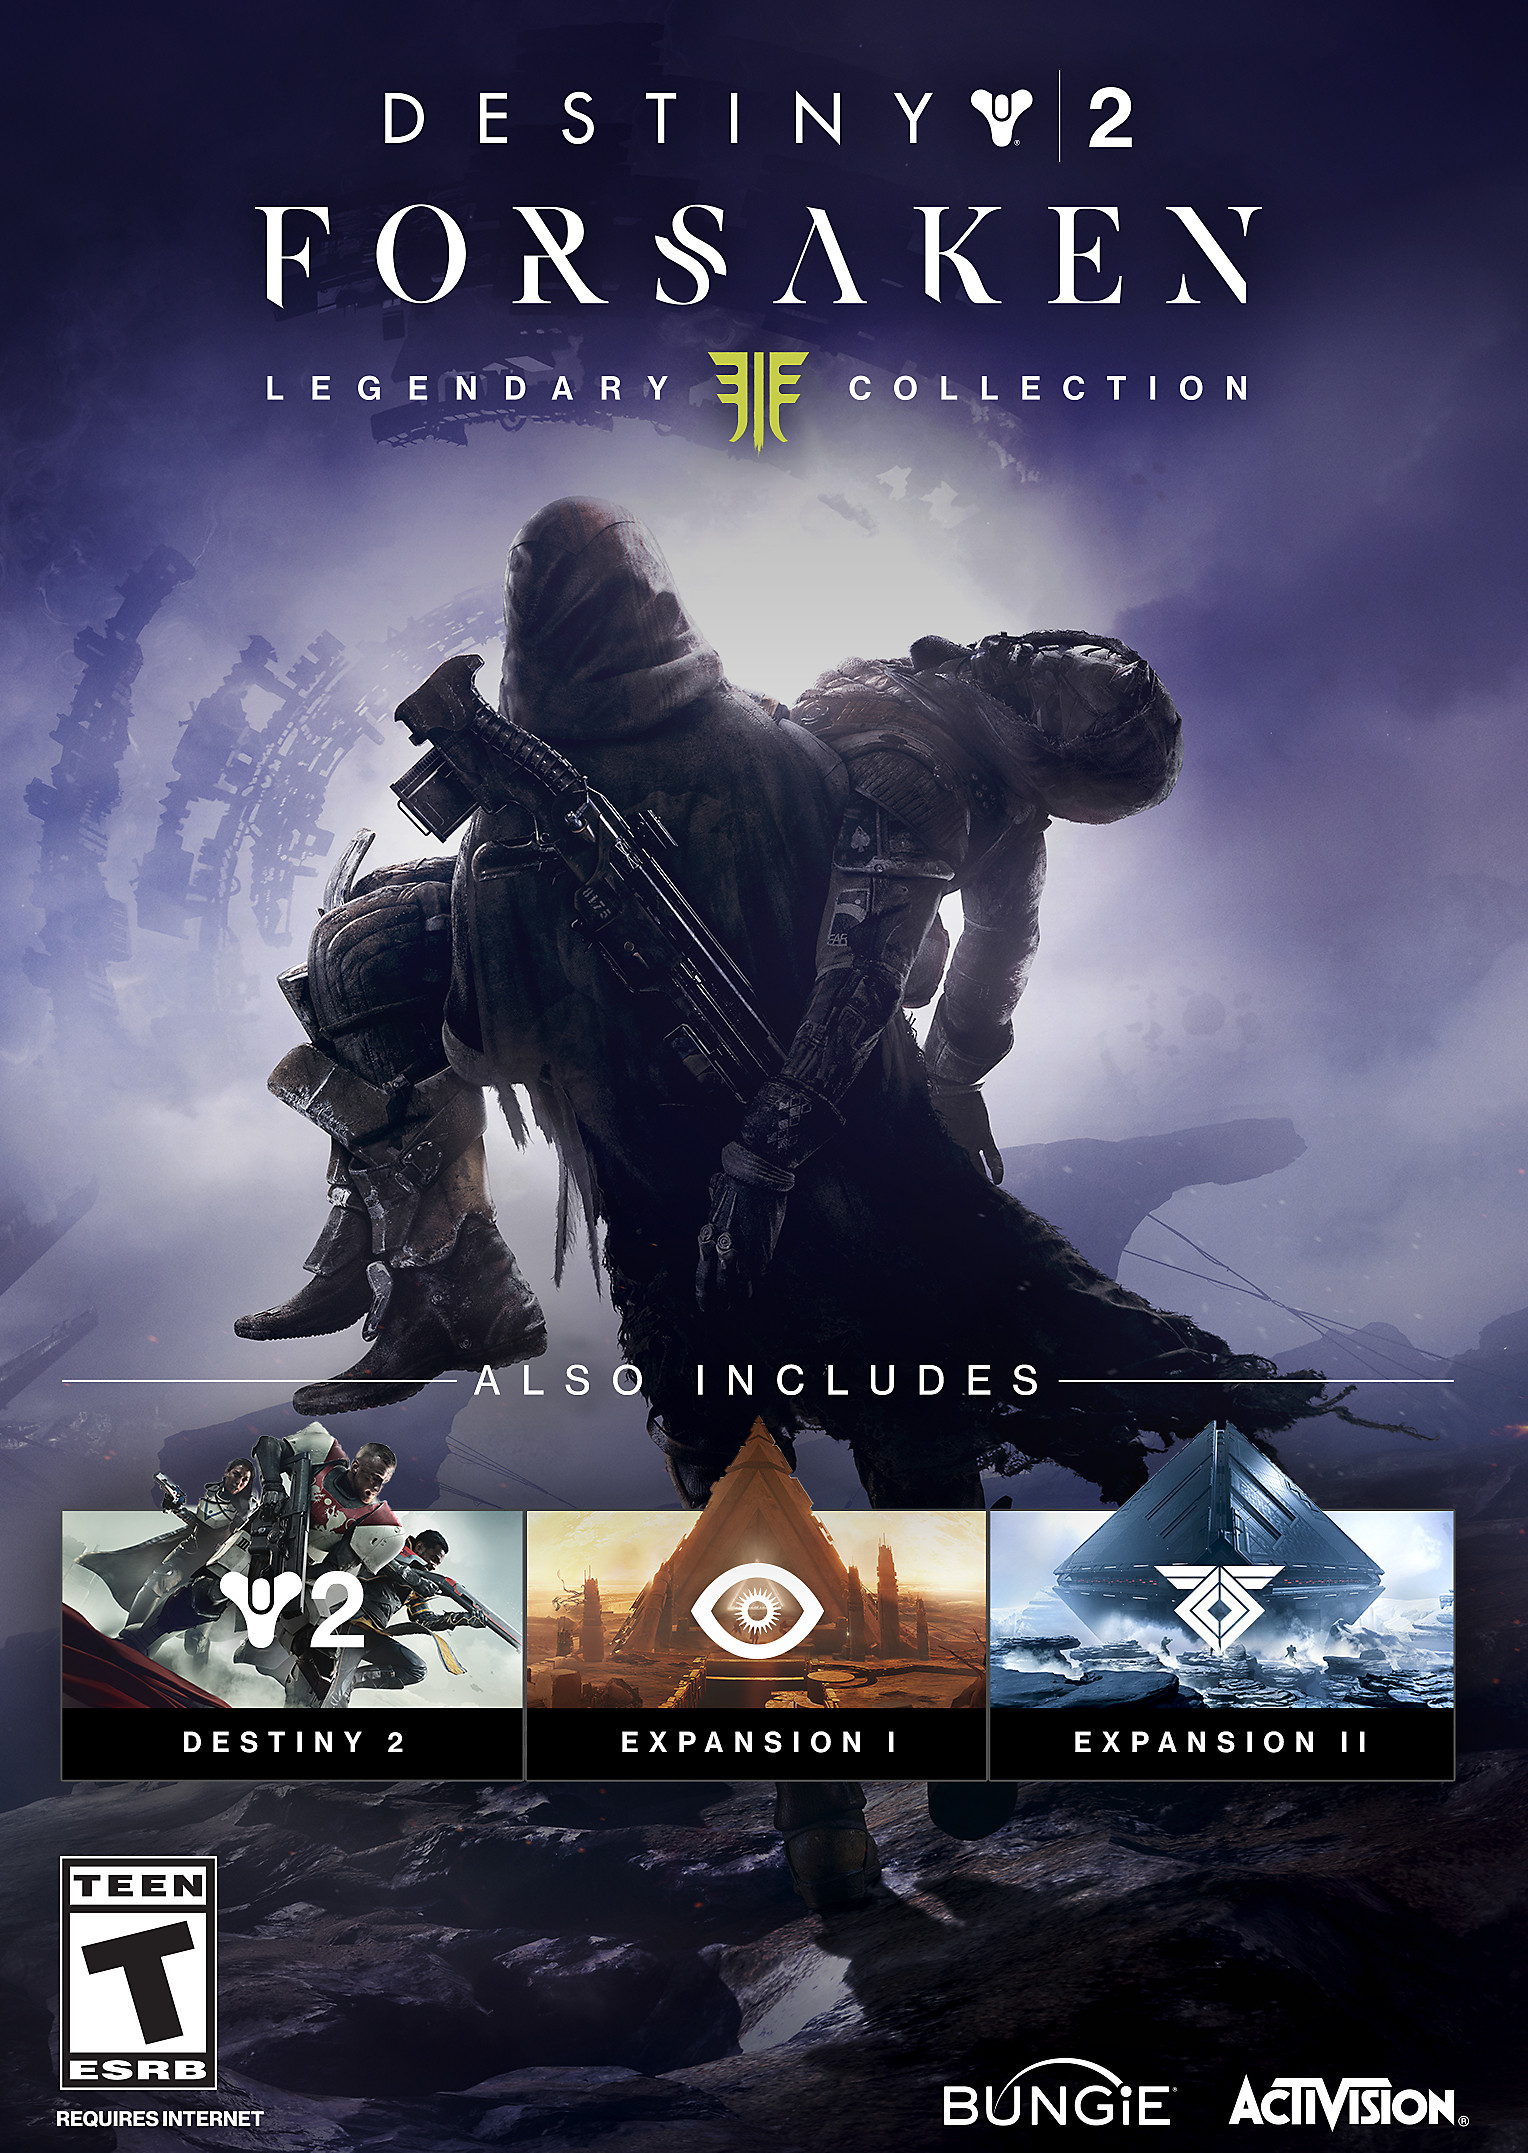 Destiny 2 Forsaken Legendary Collection Art